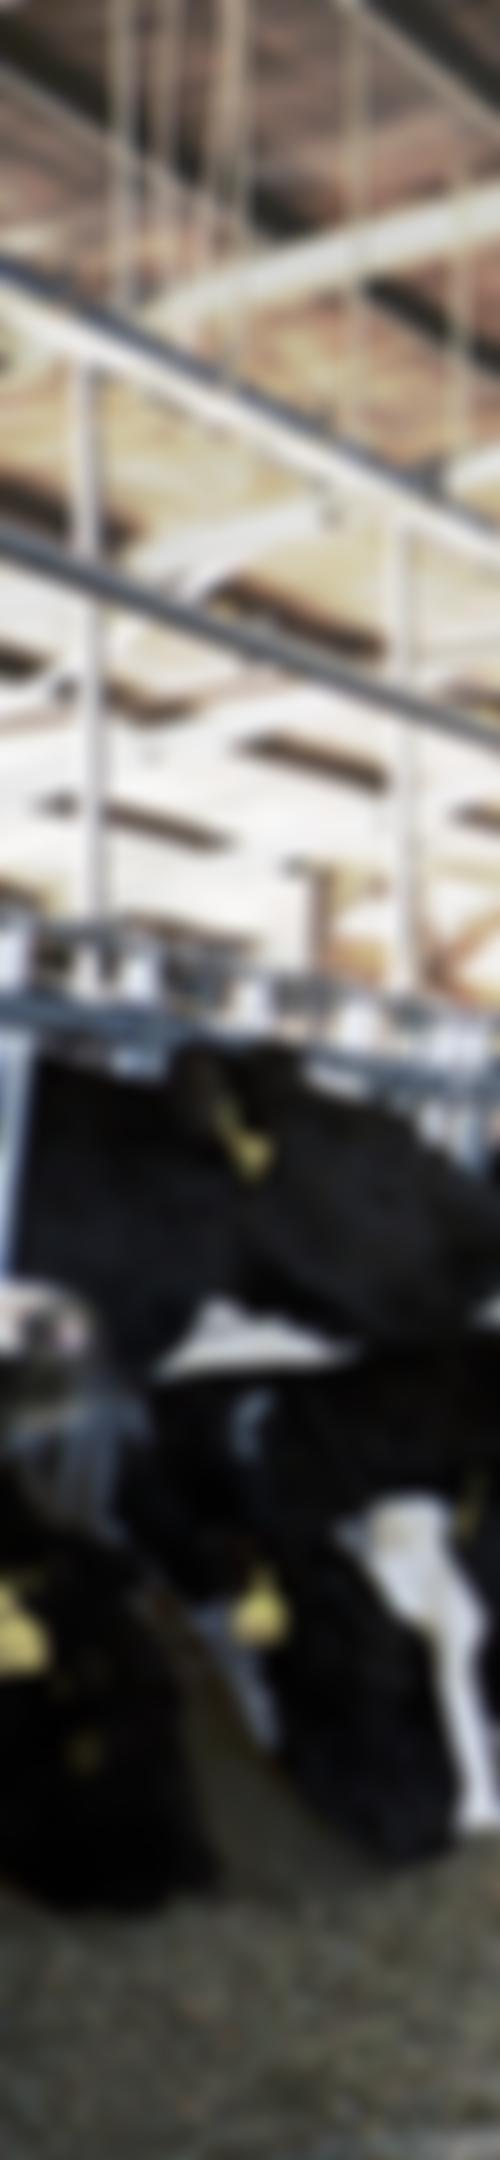 Image for Das System Milch